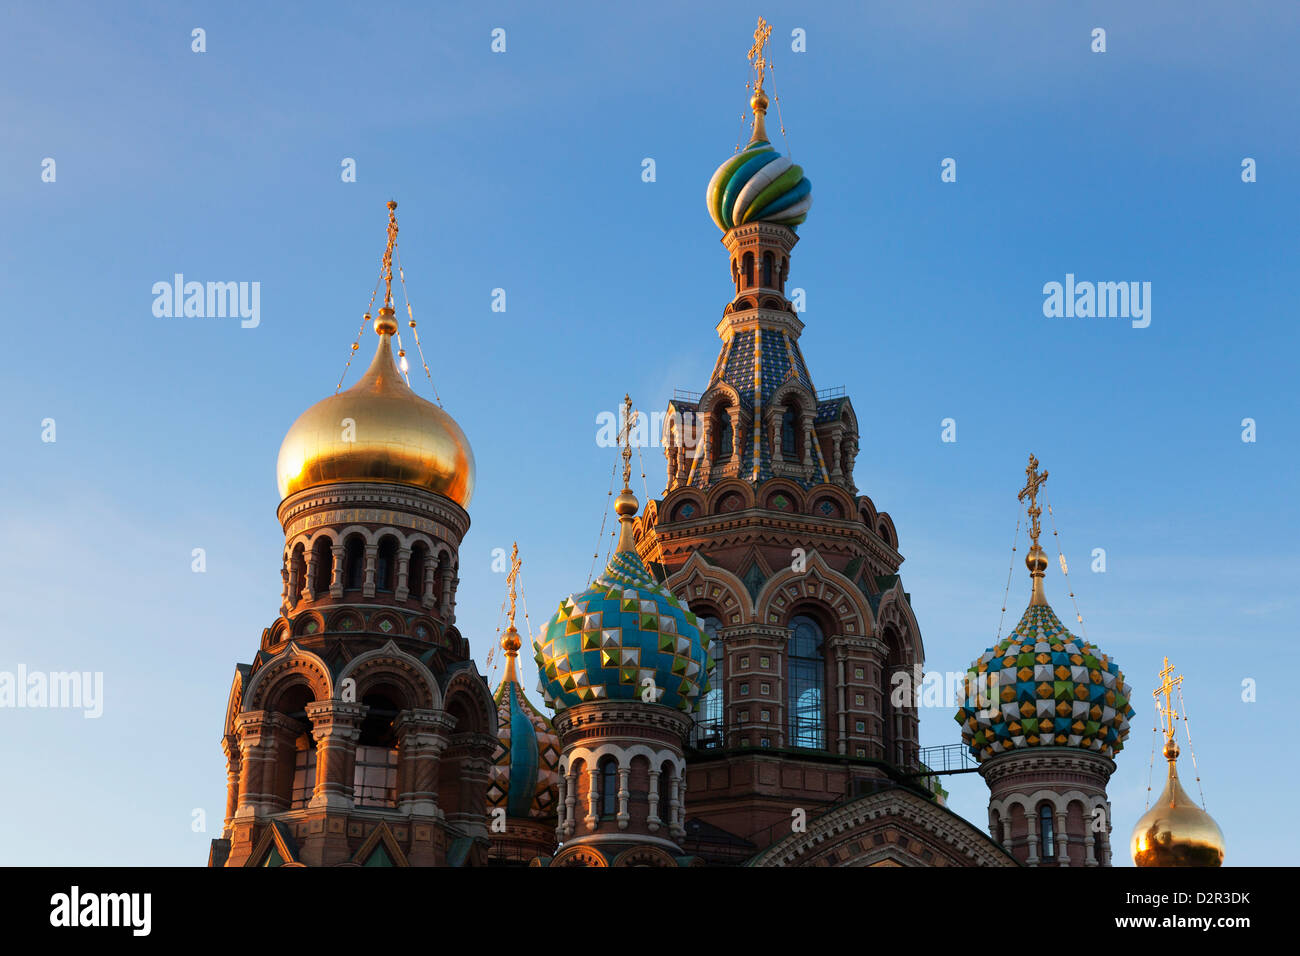 The decorative domes of the Church on Spilled Blood, UNESCO World Heritage Site, St. Petersburg, Russia, Europe - Stock Image